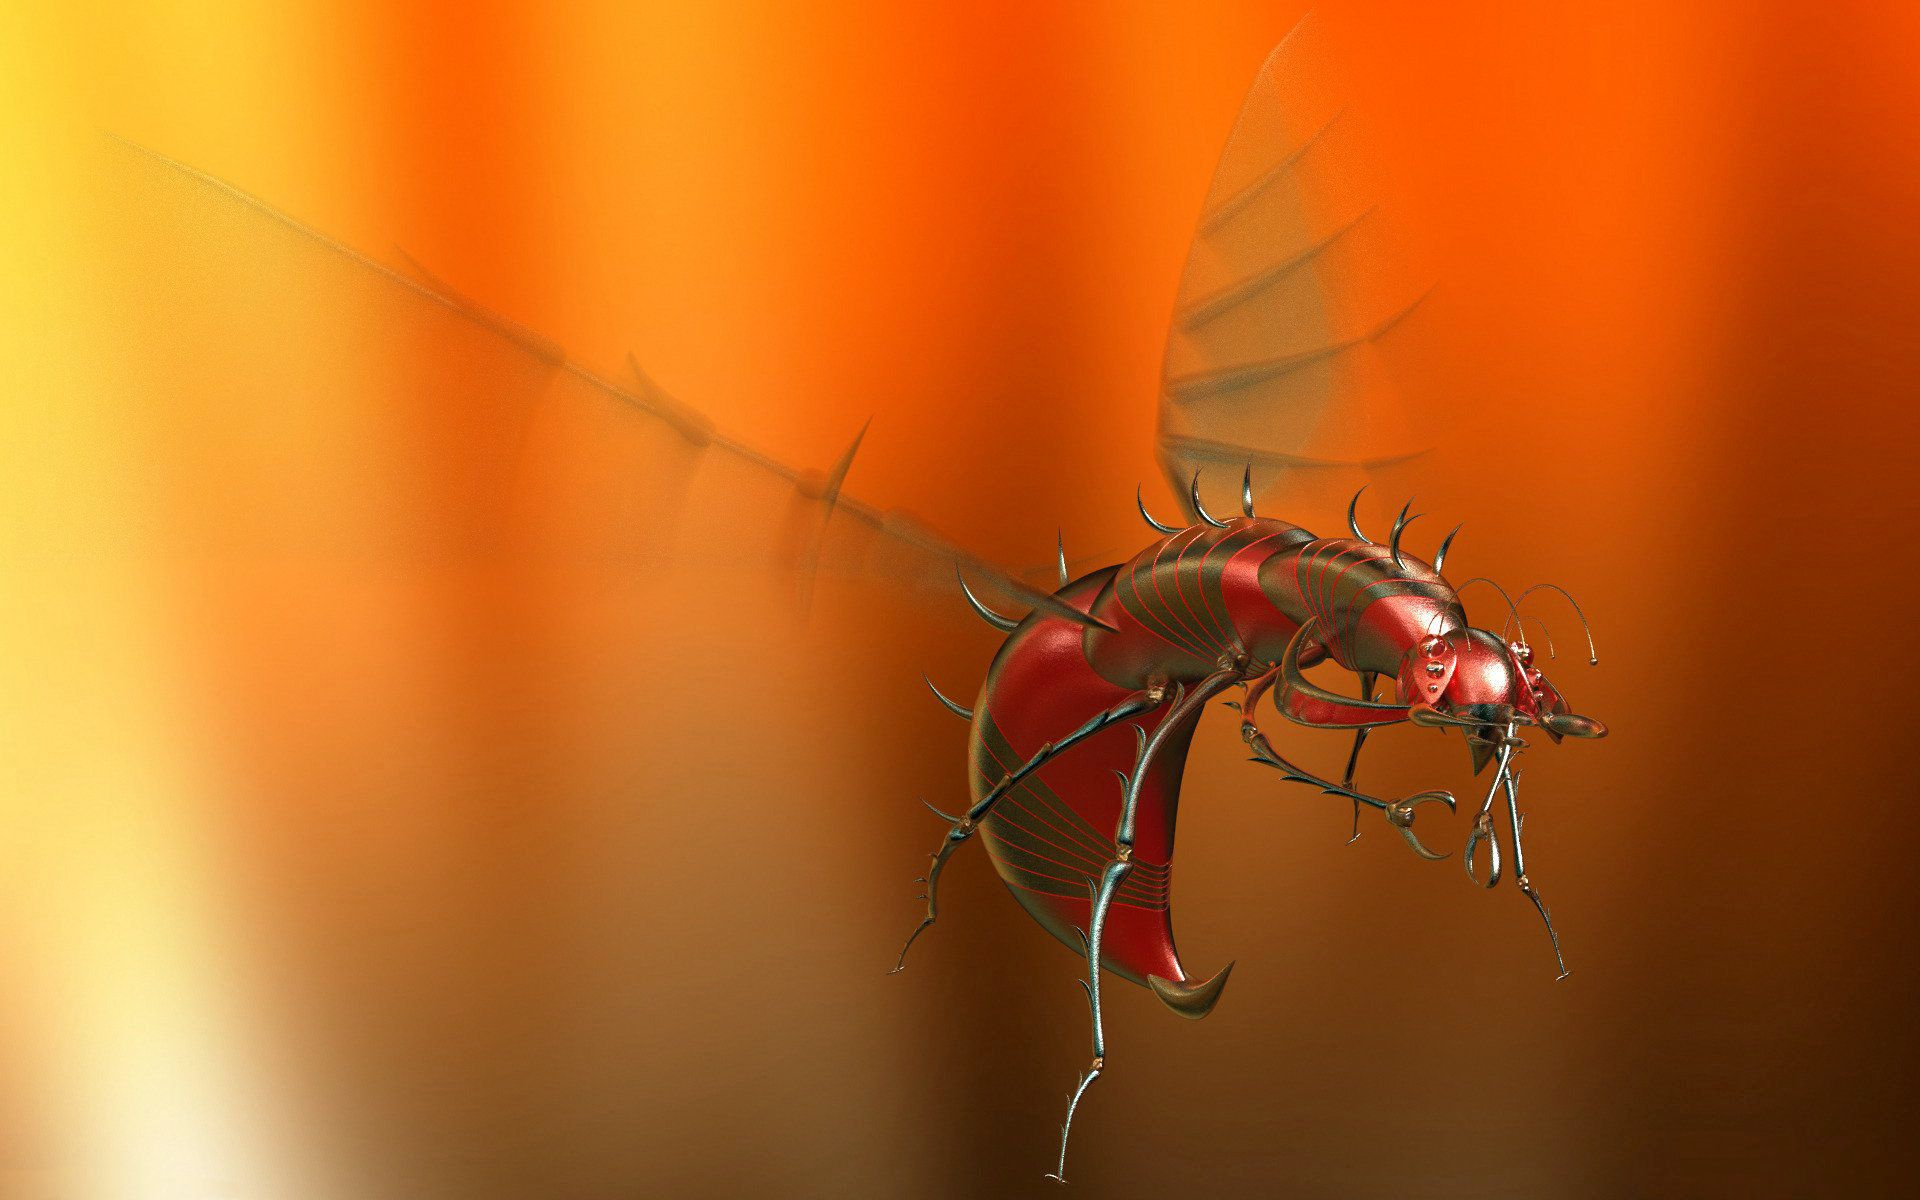 aluminum mosquito Full HD Wallpapers and Backgrounds